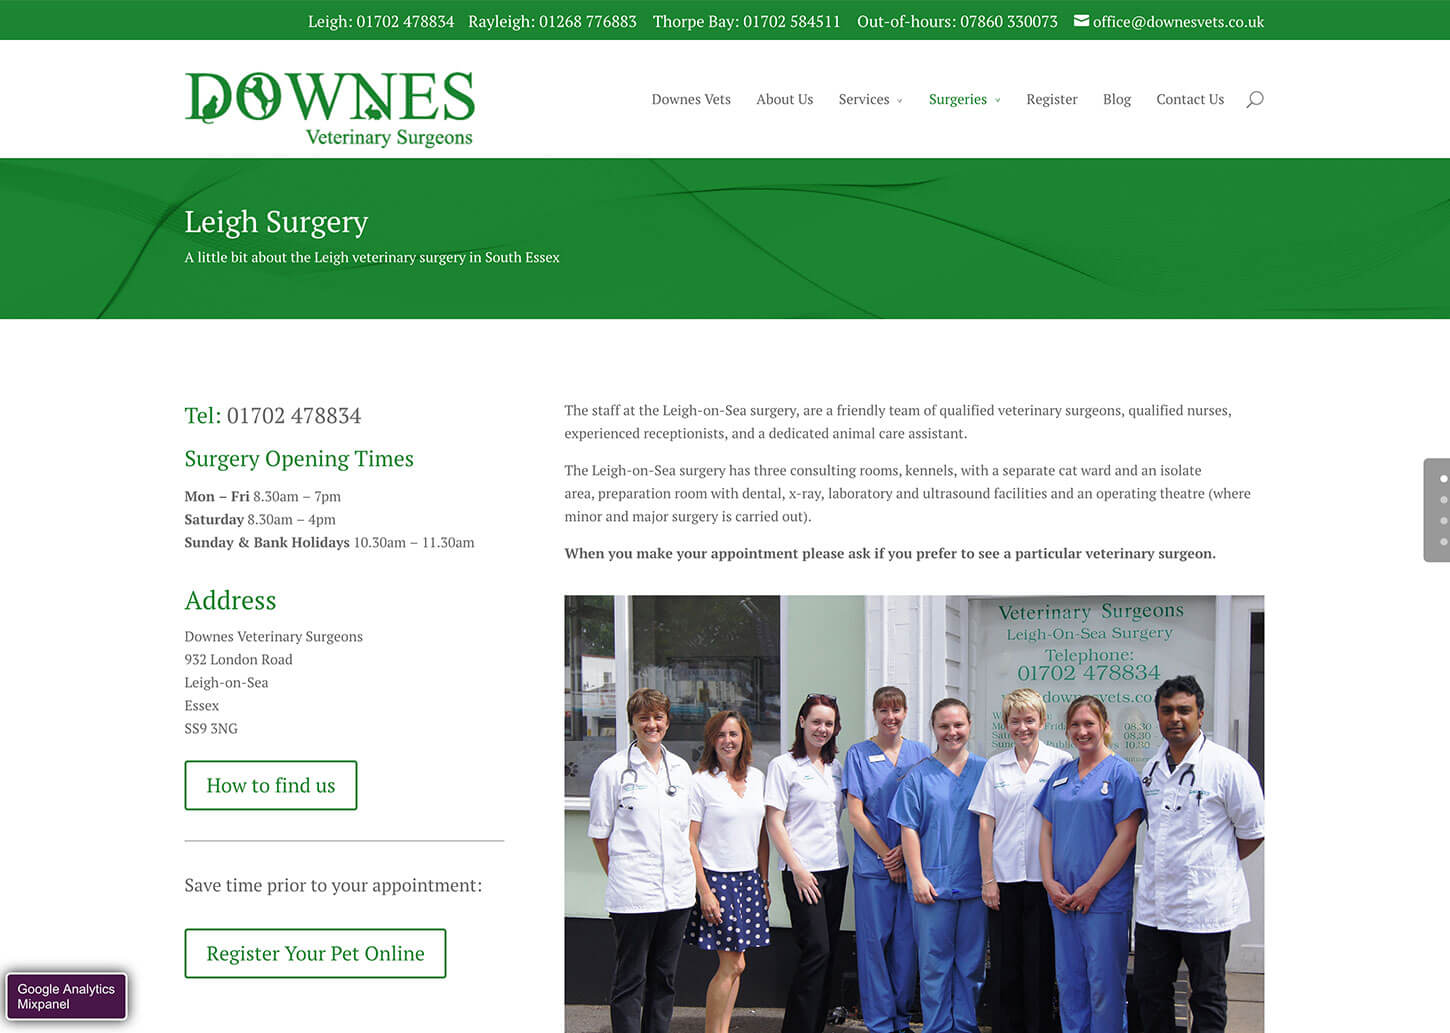 Vets website design for Downes Vets: Example Practice page